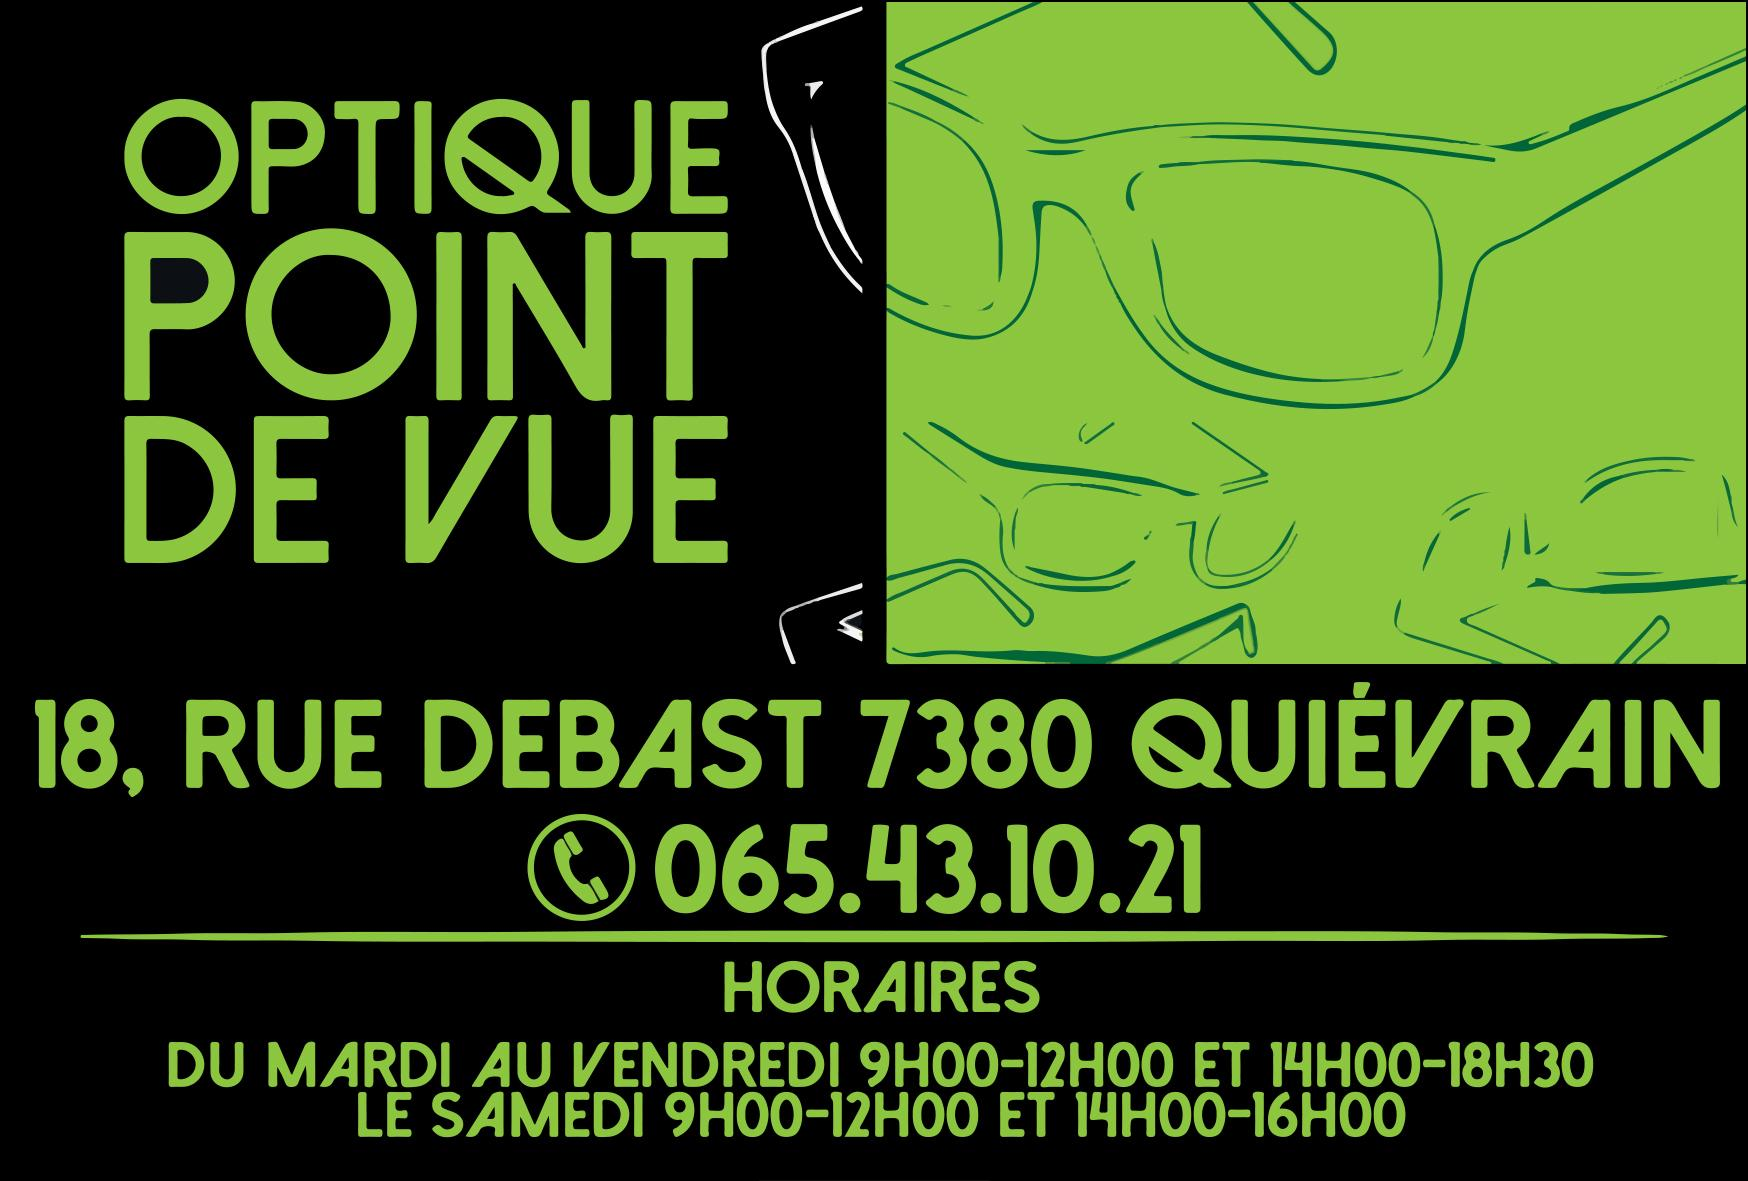 Optique Point De Vue